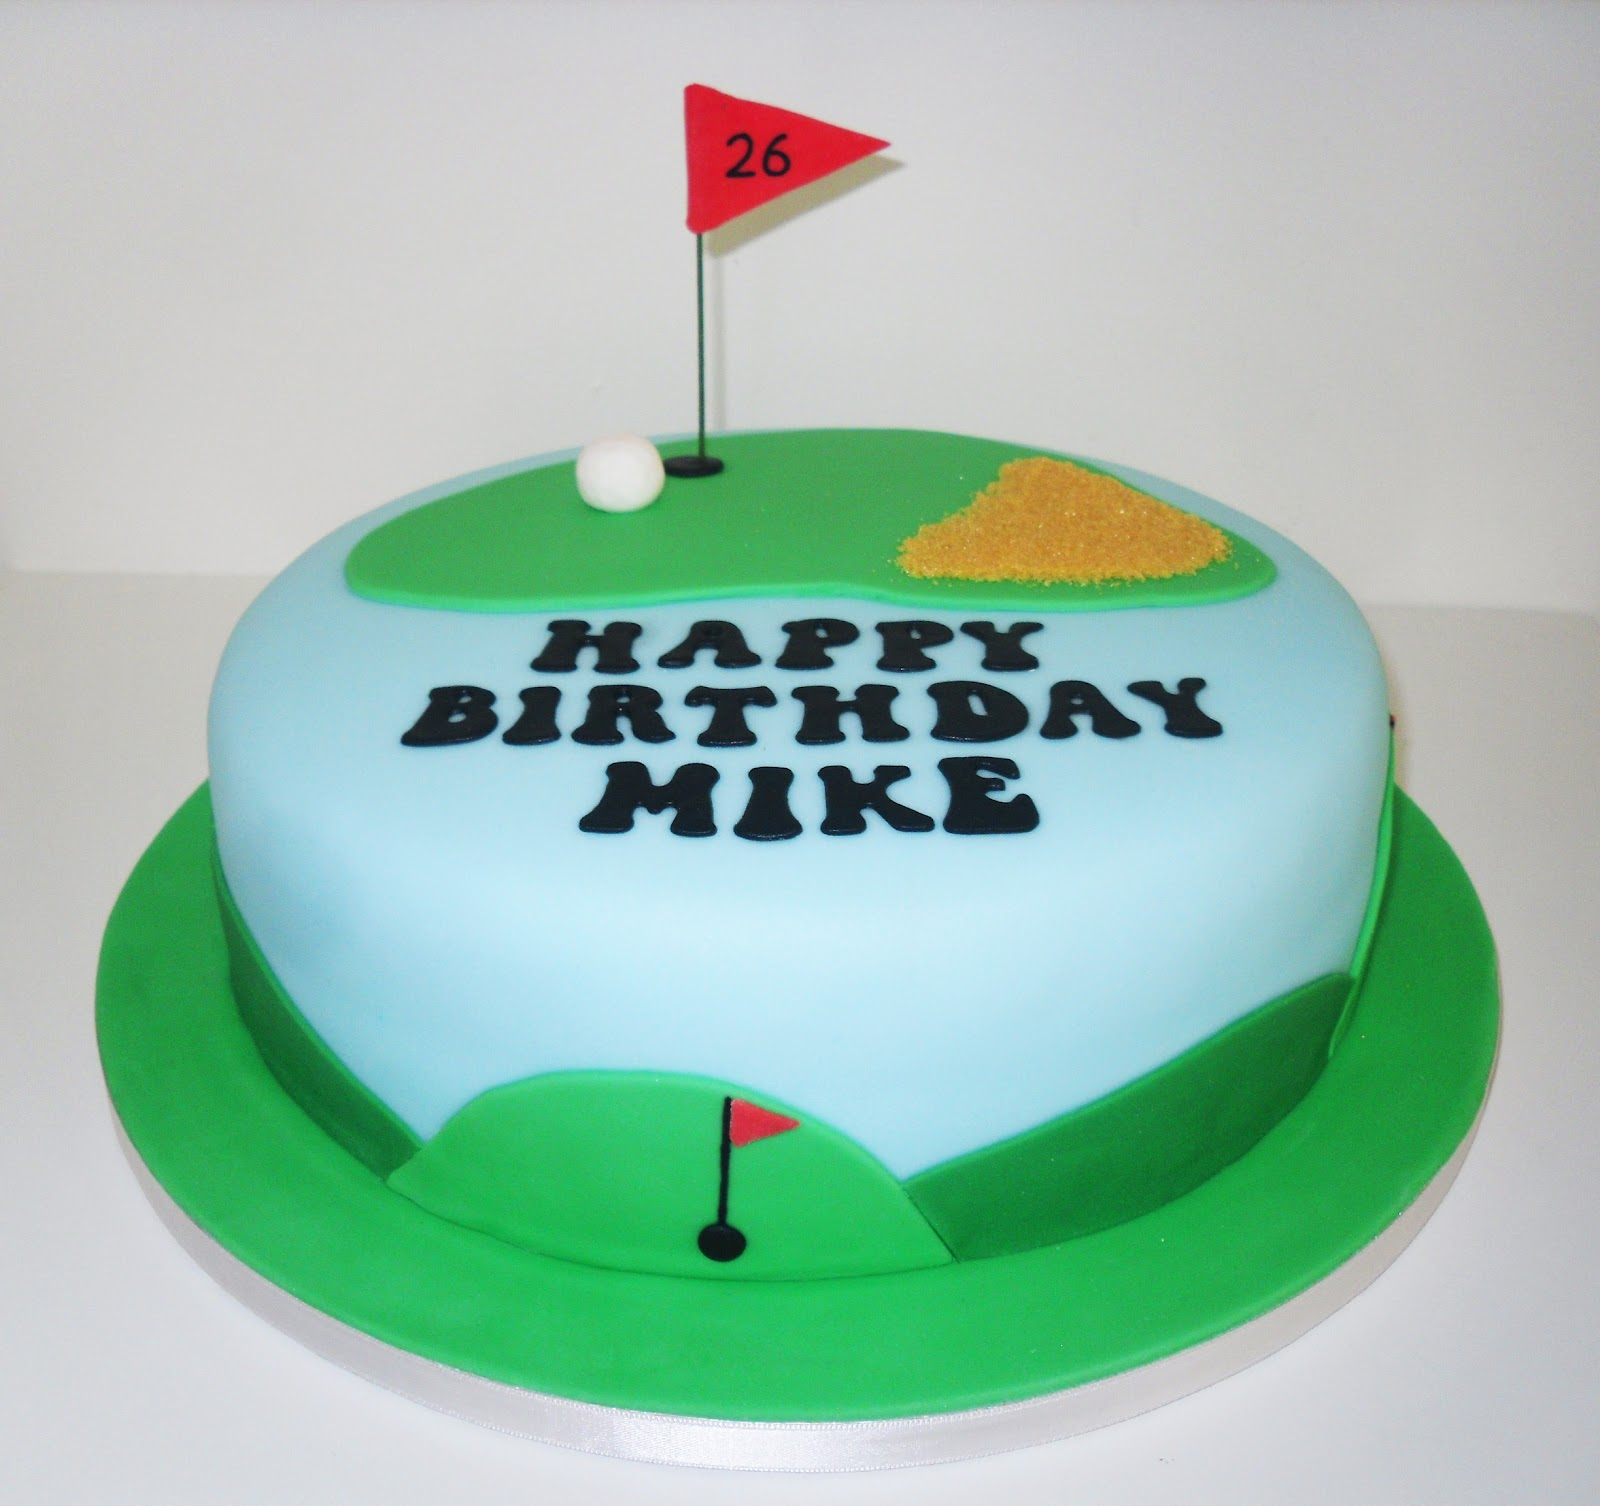 11 Cool Birthday Cakes For Mike Photo Happy Birthday Mike Cake